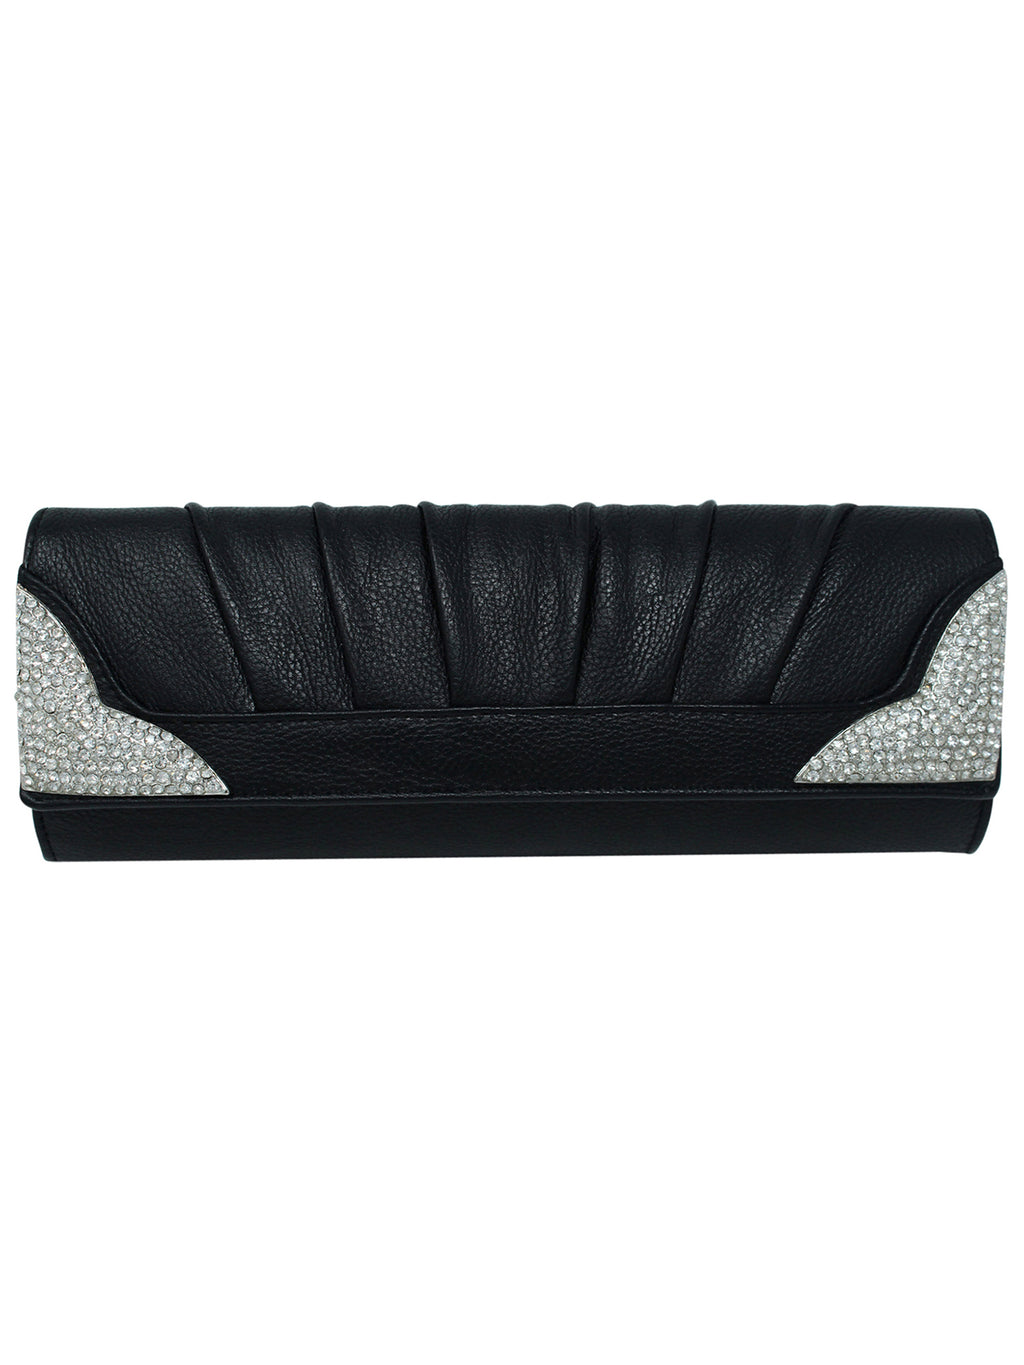 Black Long Evening Bag With Rhinestone Tips